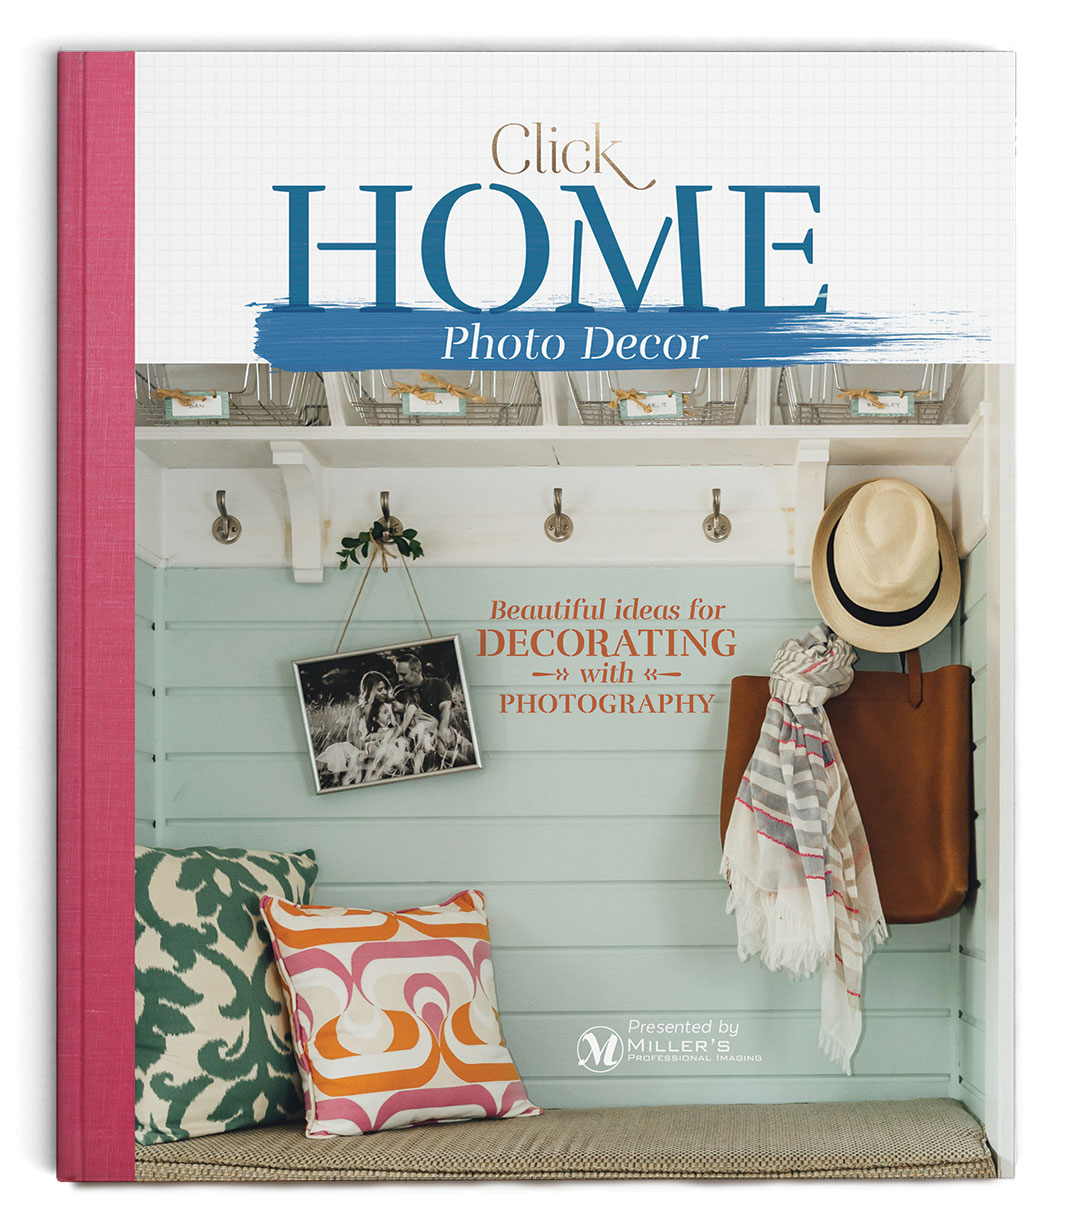 The Home Photo Decor Guide